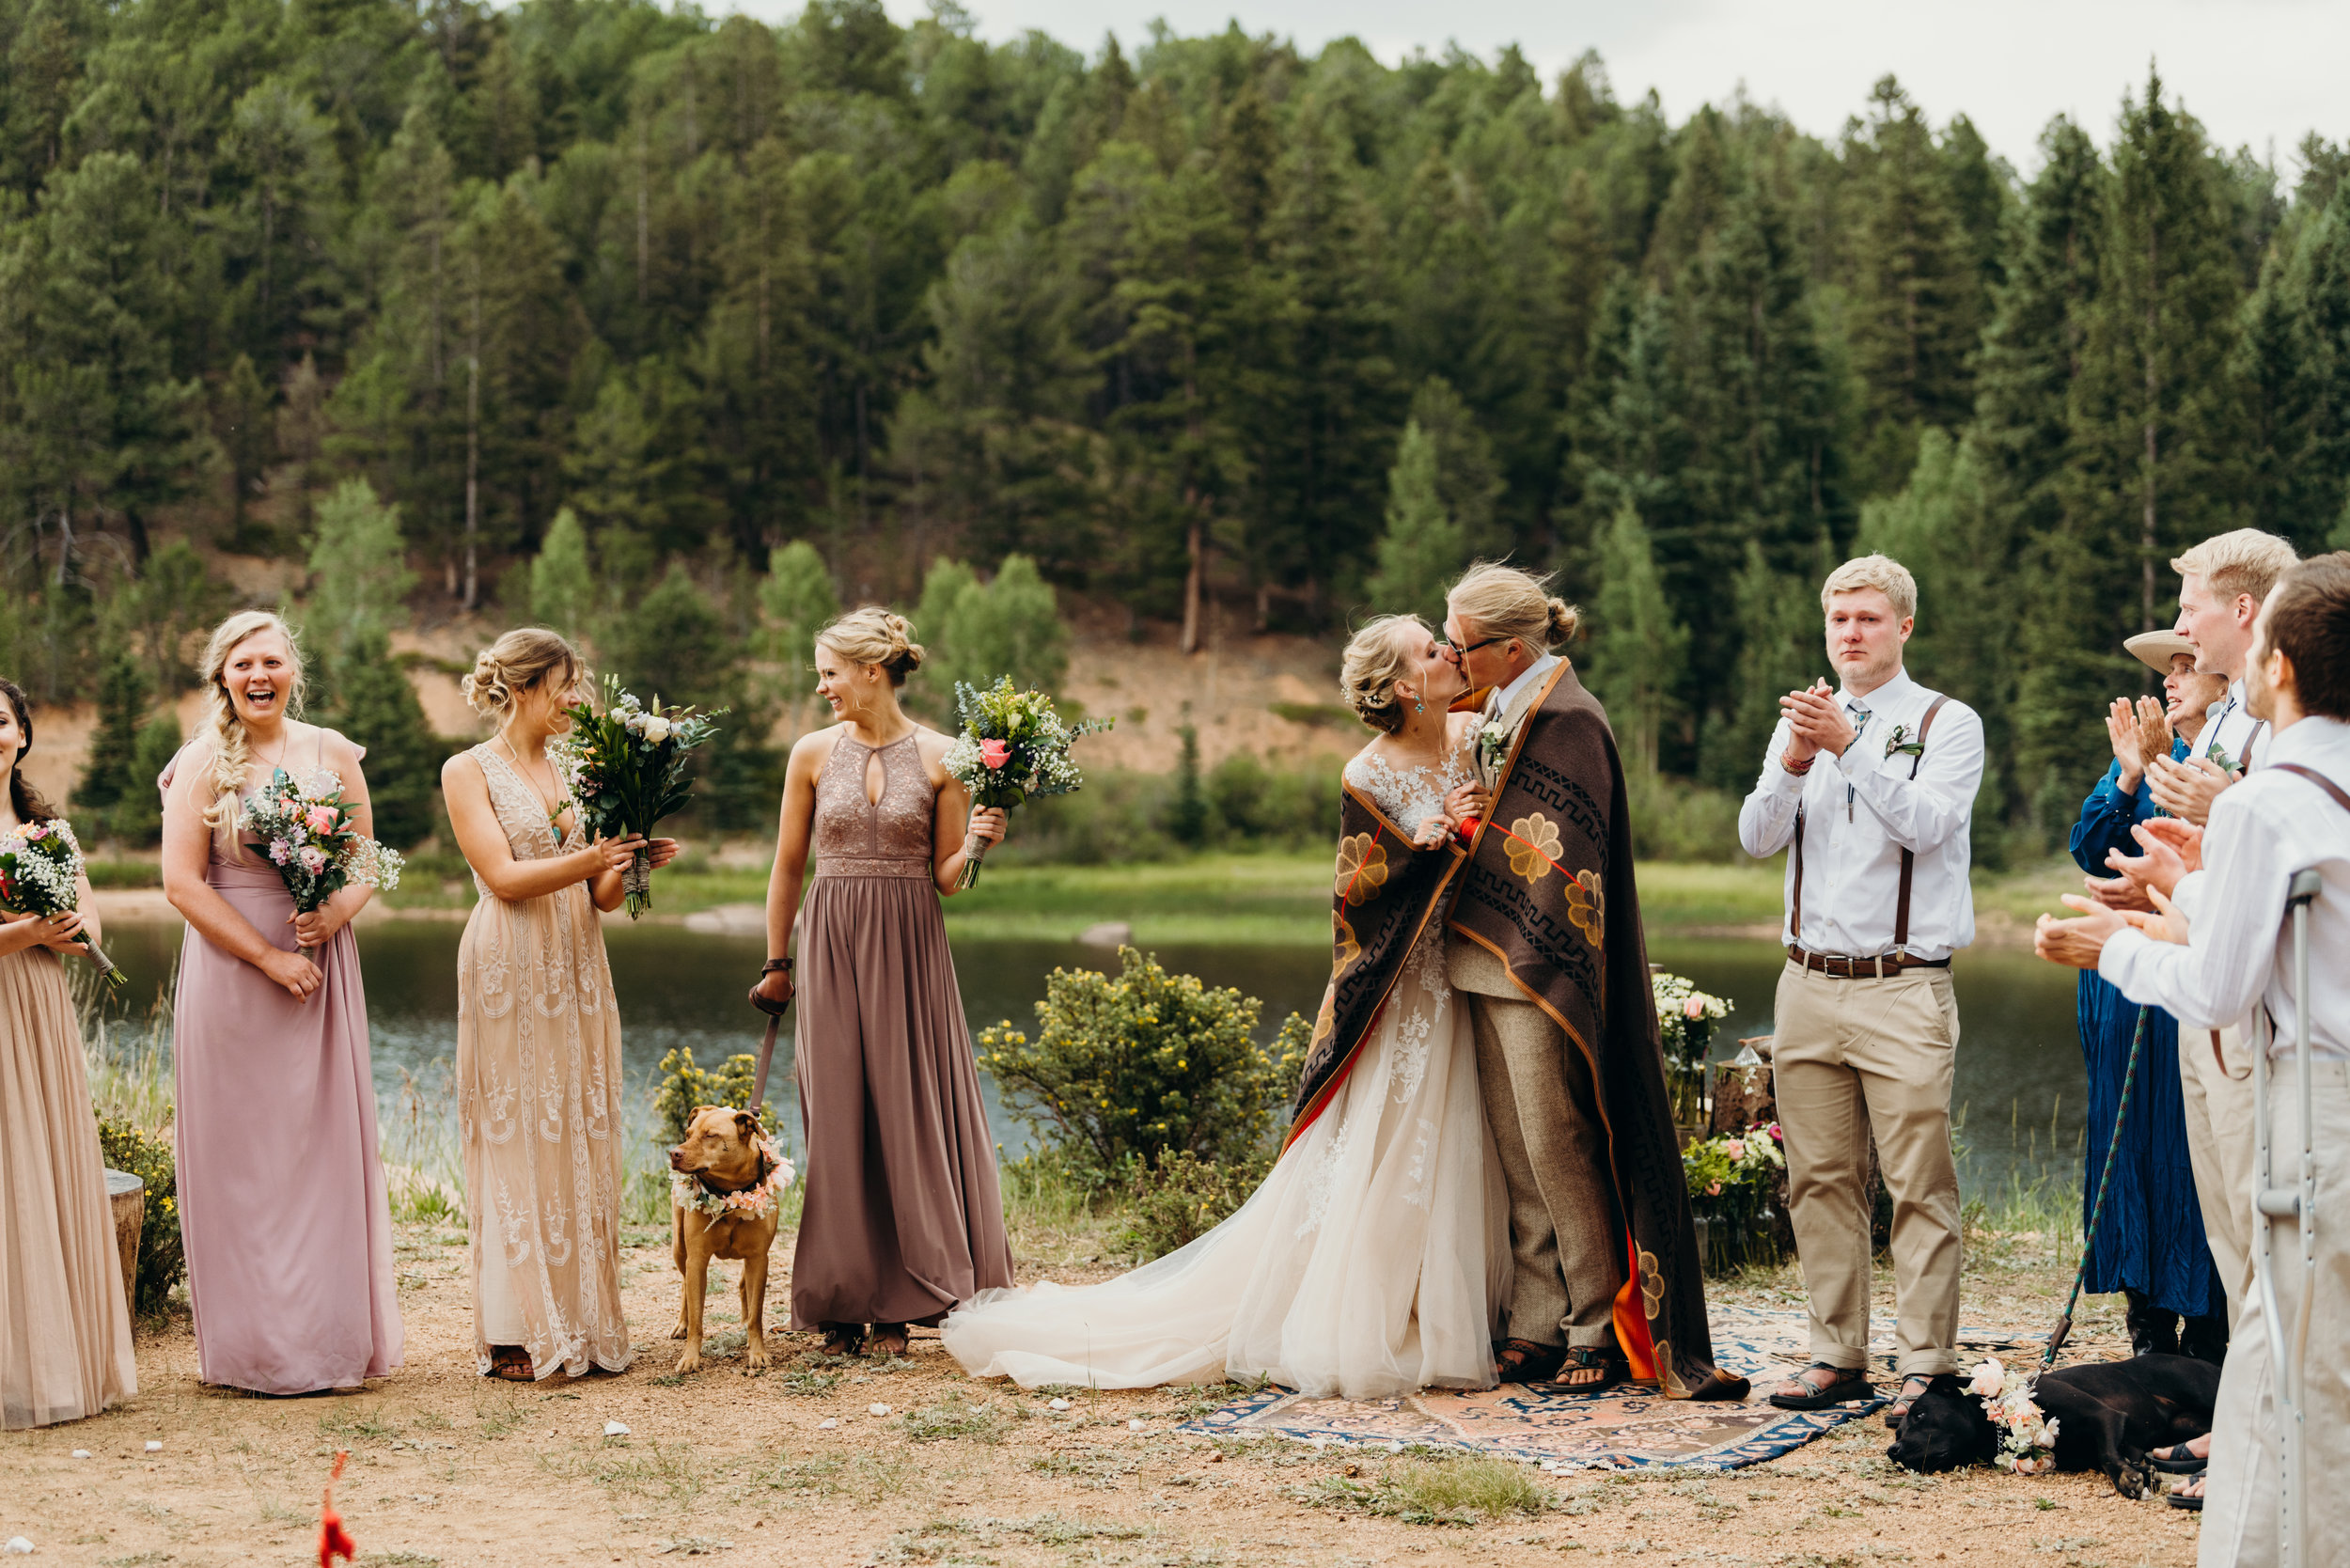 Smooch! Ally & Jared's Rustic Colorado mountain / diy / summer camp wedding